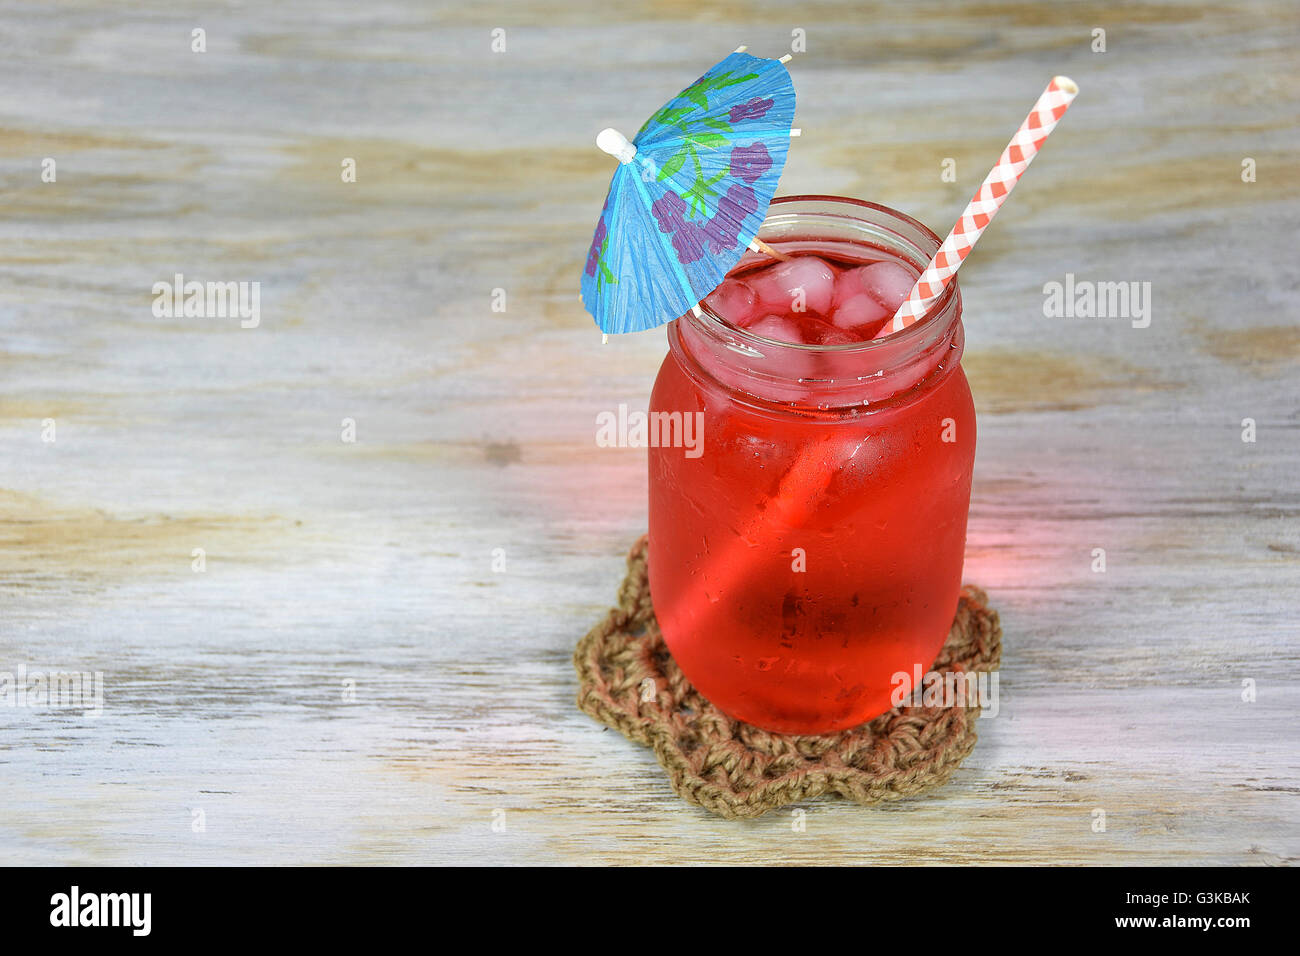 Fruit Punch Drink With Paper Umbrella And Gingham Straw In Glass Mason Jar On Weathered Wood